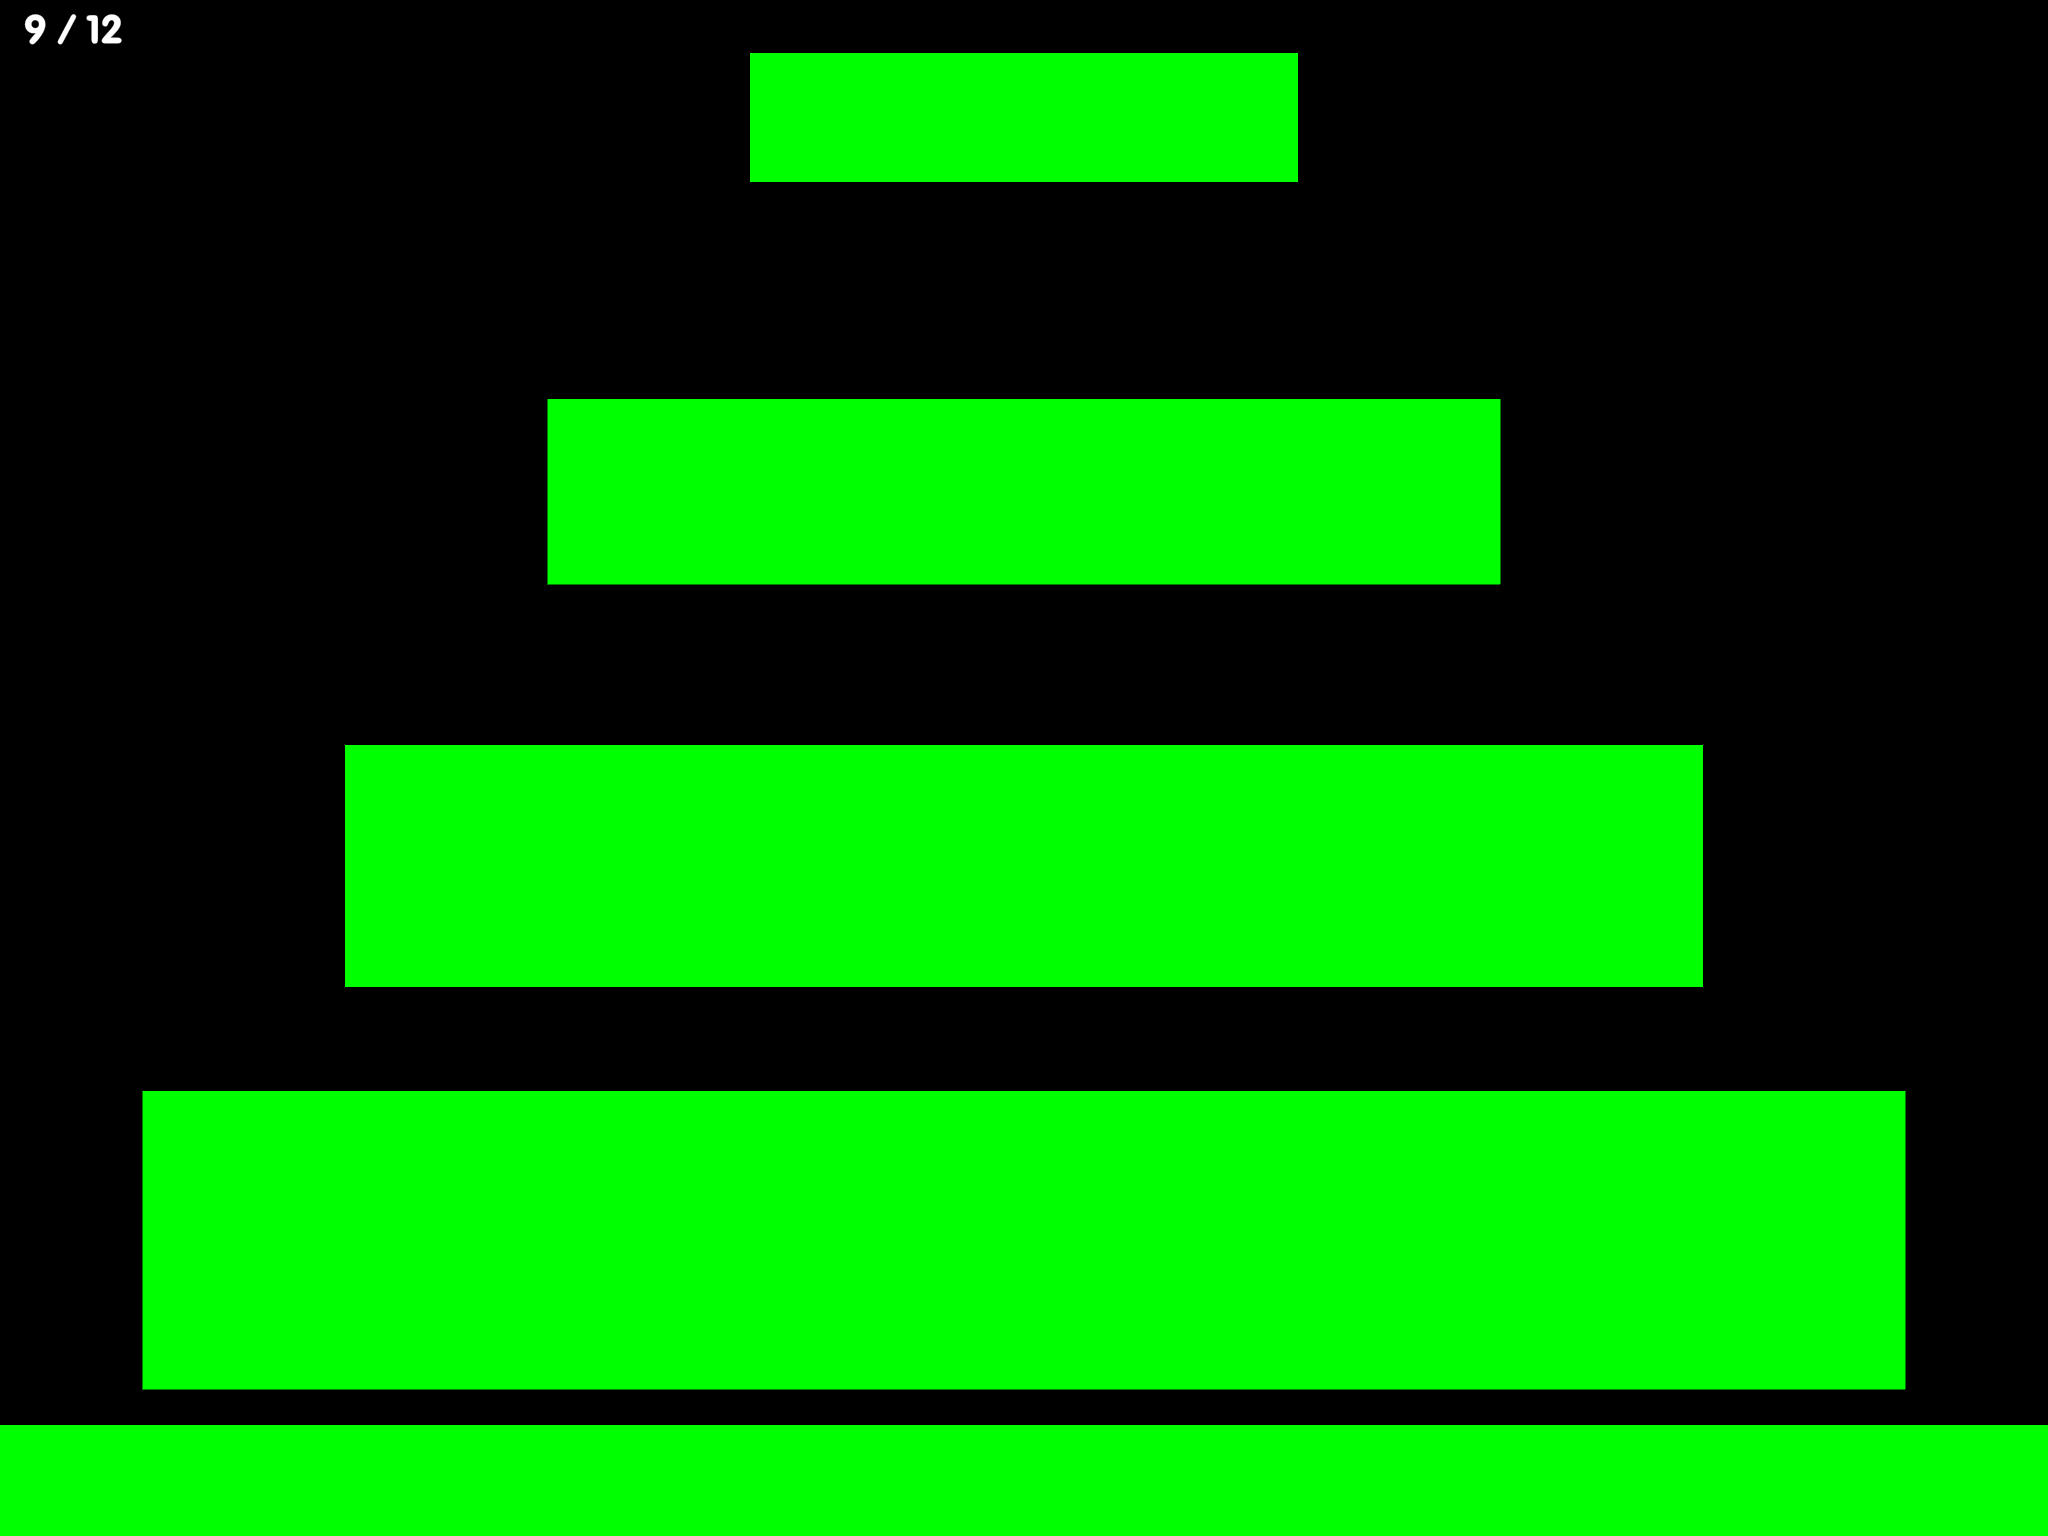 Screenshot of Big Bang Patterns: Black background with Green bars moving horizontally to the top of the screen